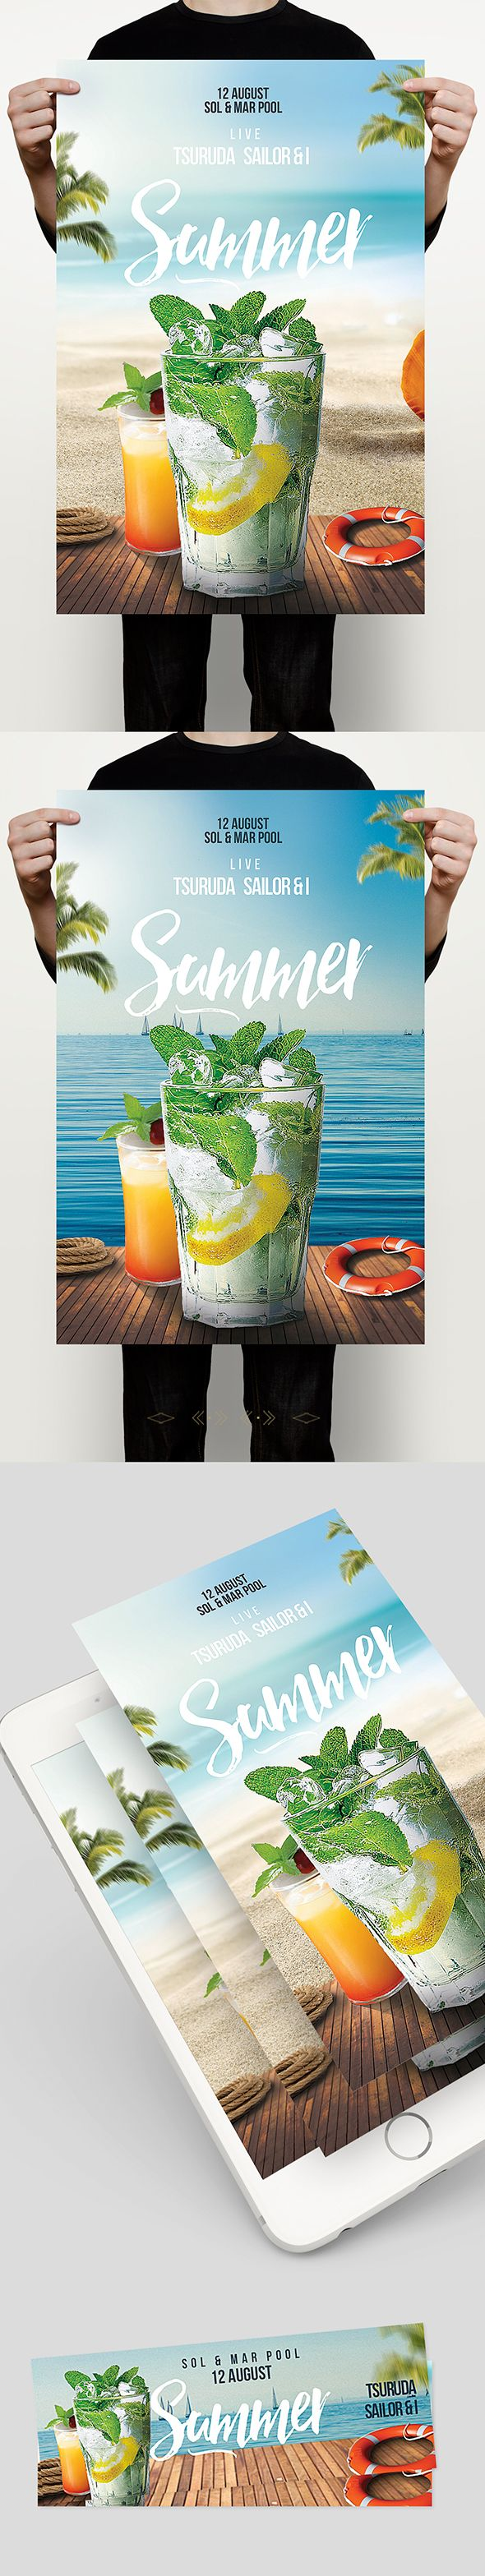 Pool Party Flyer on Behance